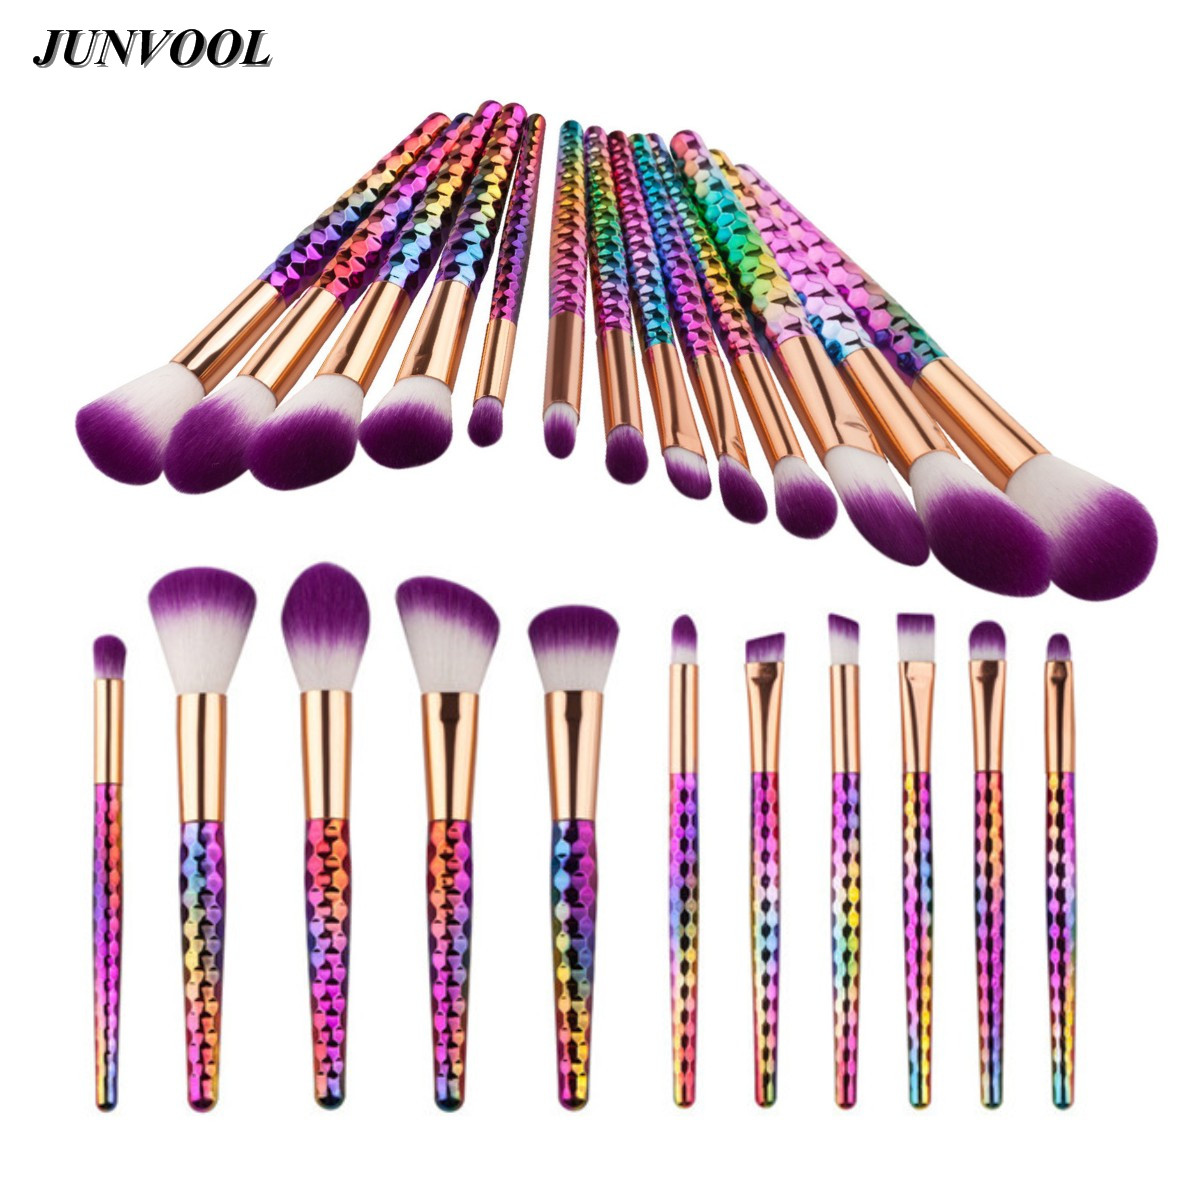 Pensulă cosmetică Royal Purple Fantezie multicolore Machiaj Perii Set Fundația Blusher Fard de Ochi Blending Rainbow Make Up Beauty